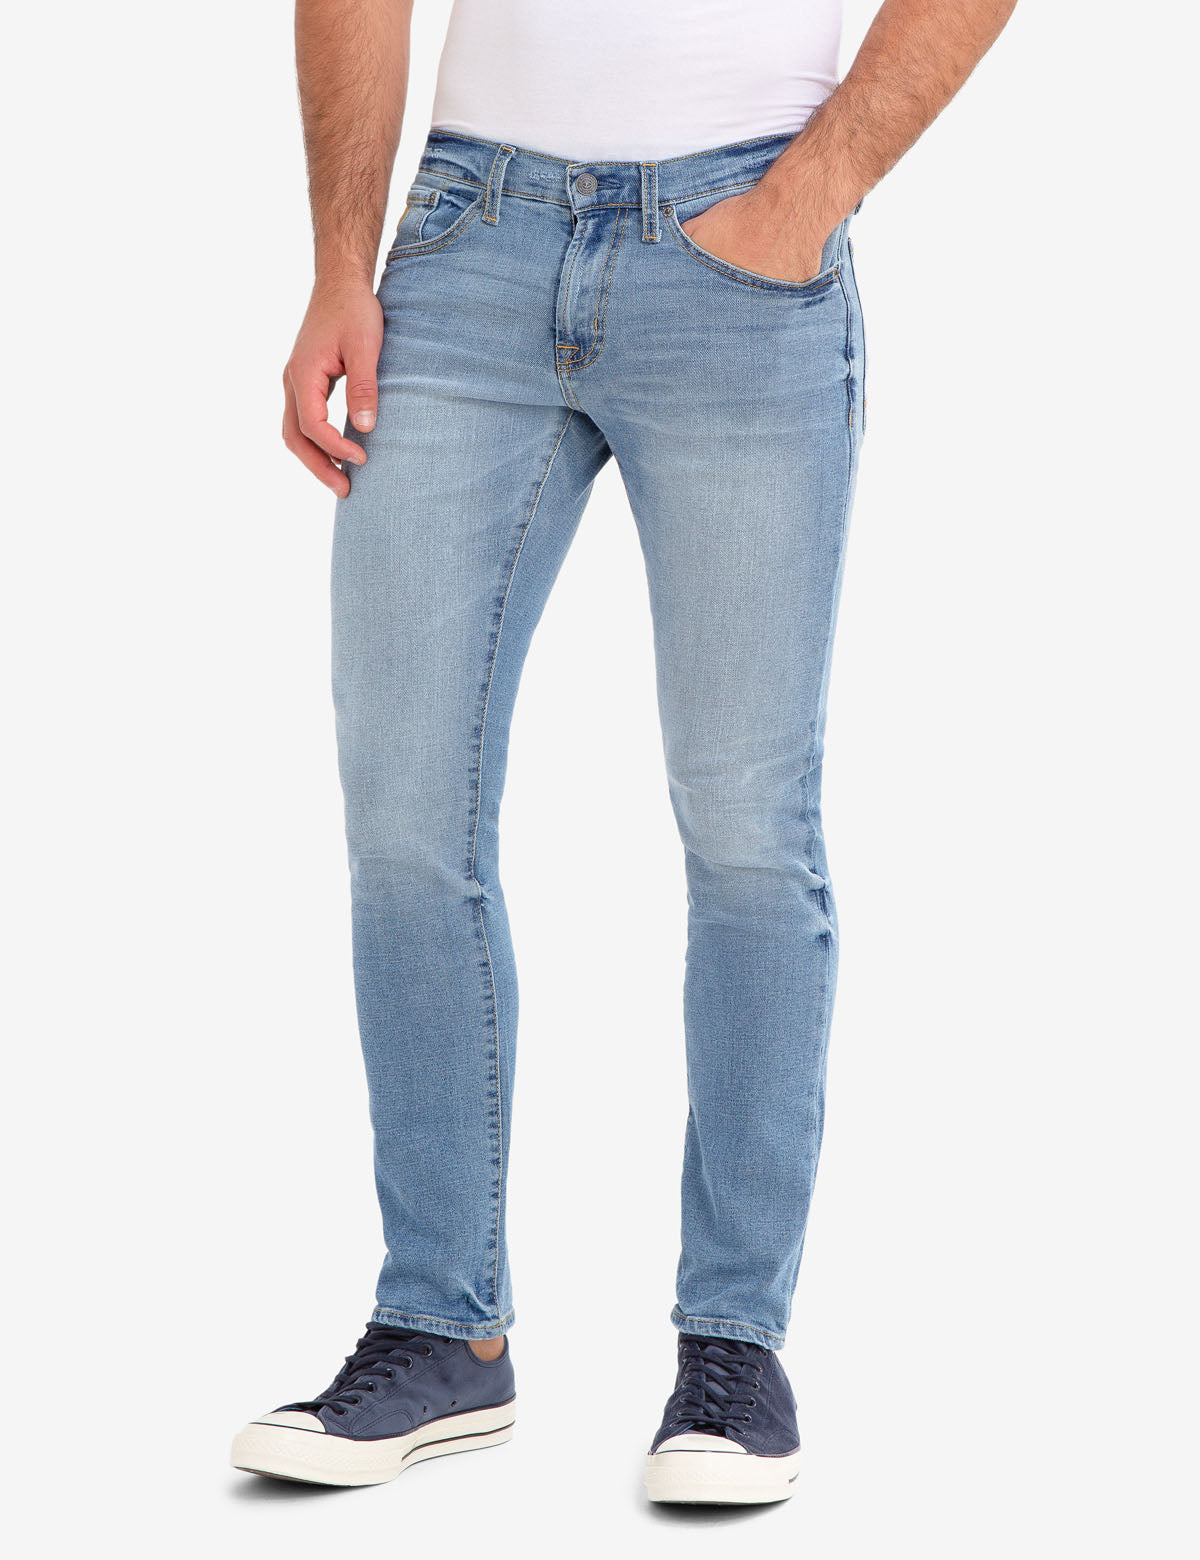 U.S. Polo Assn. - Mens Slim Stretch 5 Pocket Jeans